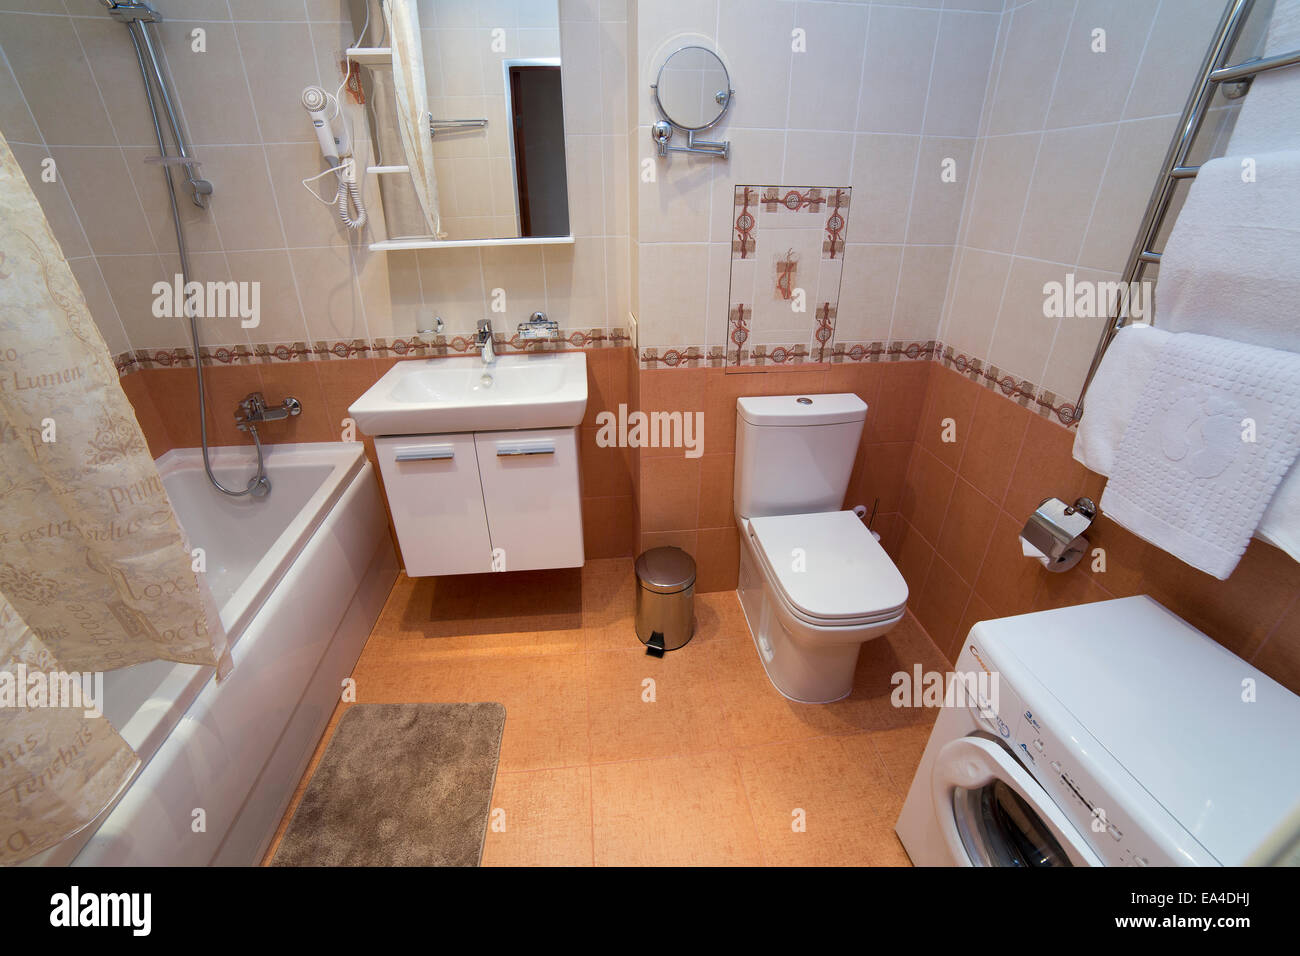 bathroom wc toilet lavatory room interior design stock photo